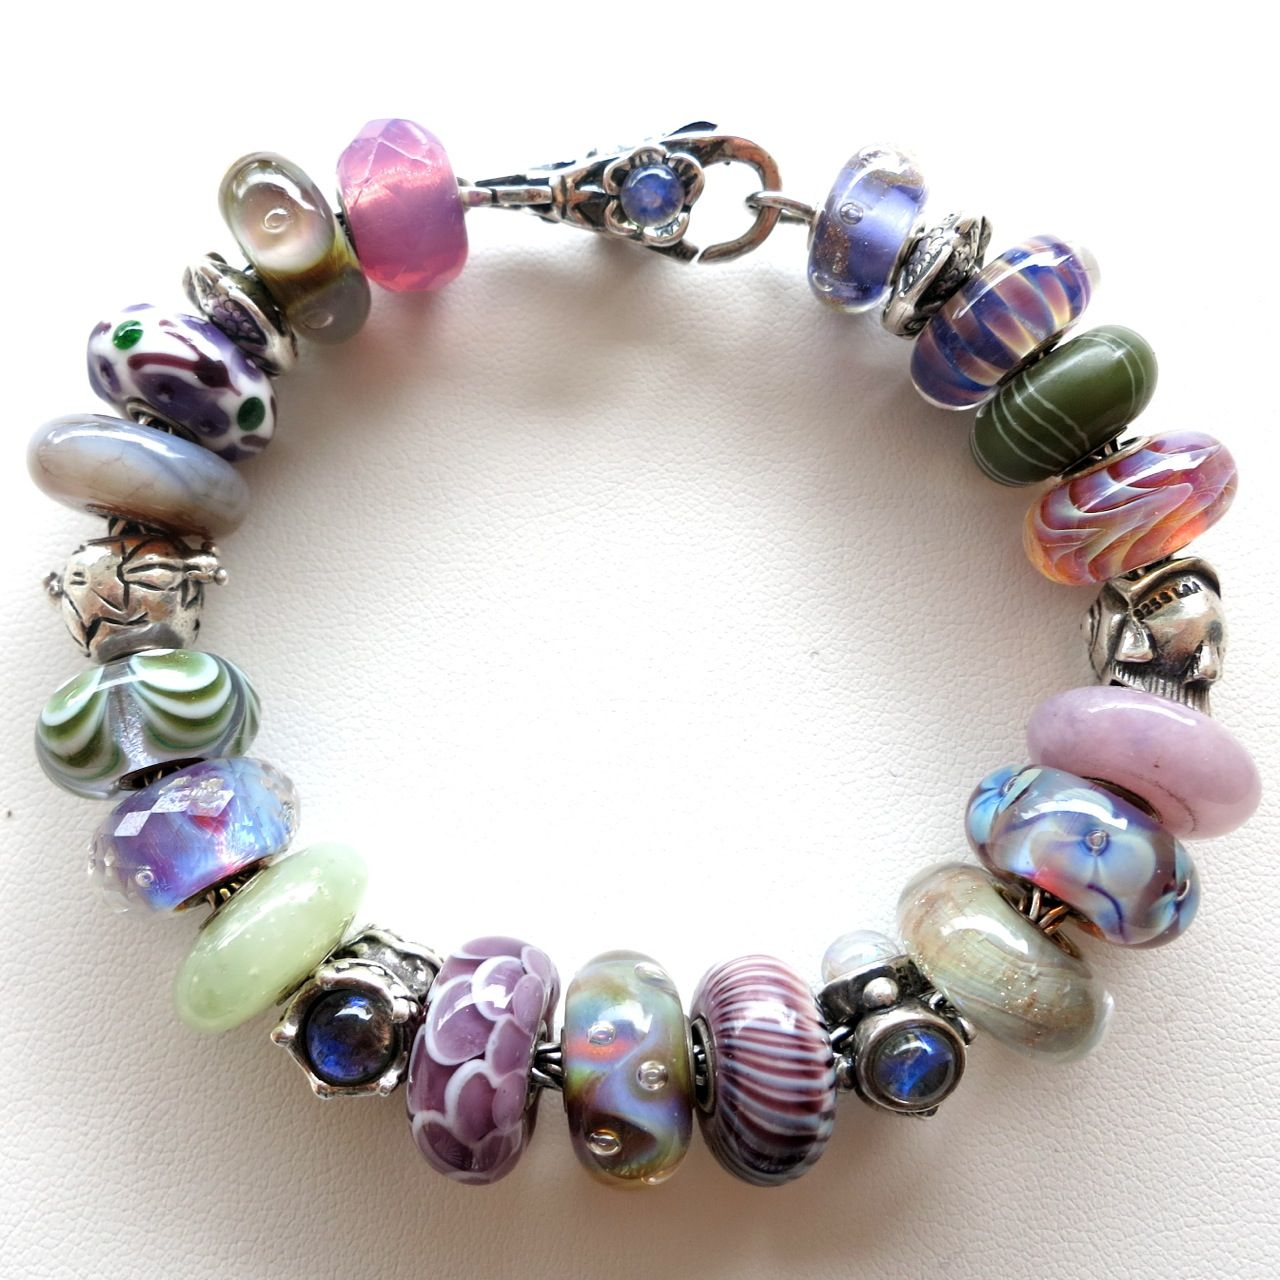 charms preview bracelet addict spring trollbeads collection inspiration trollbead